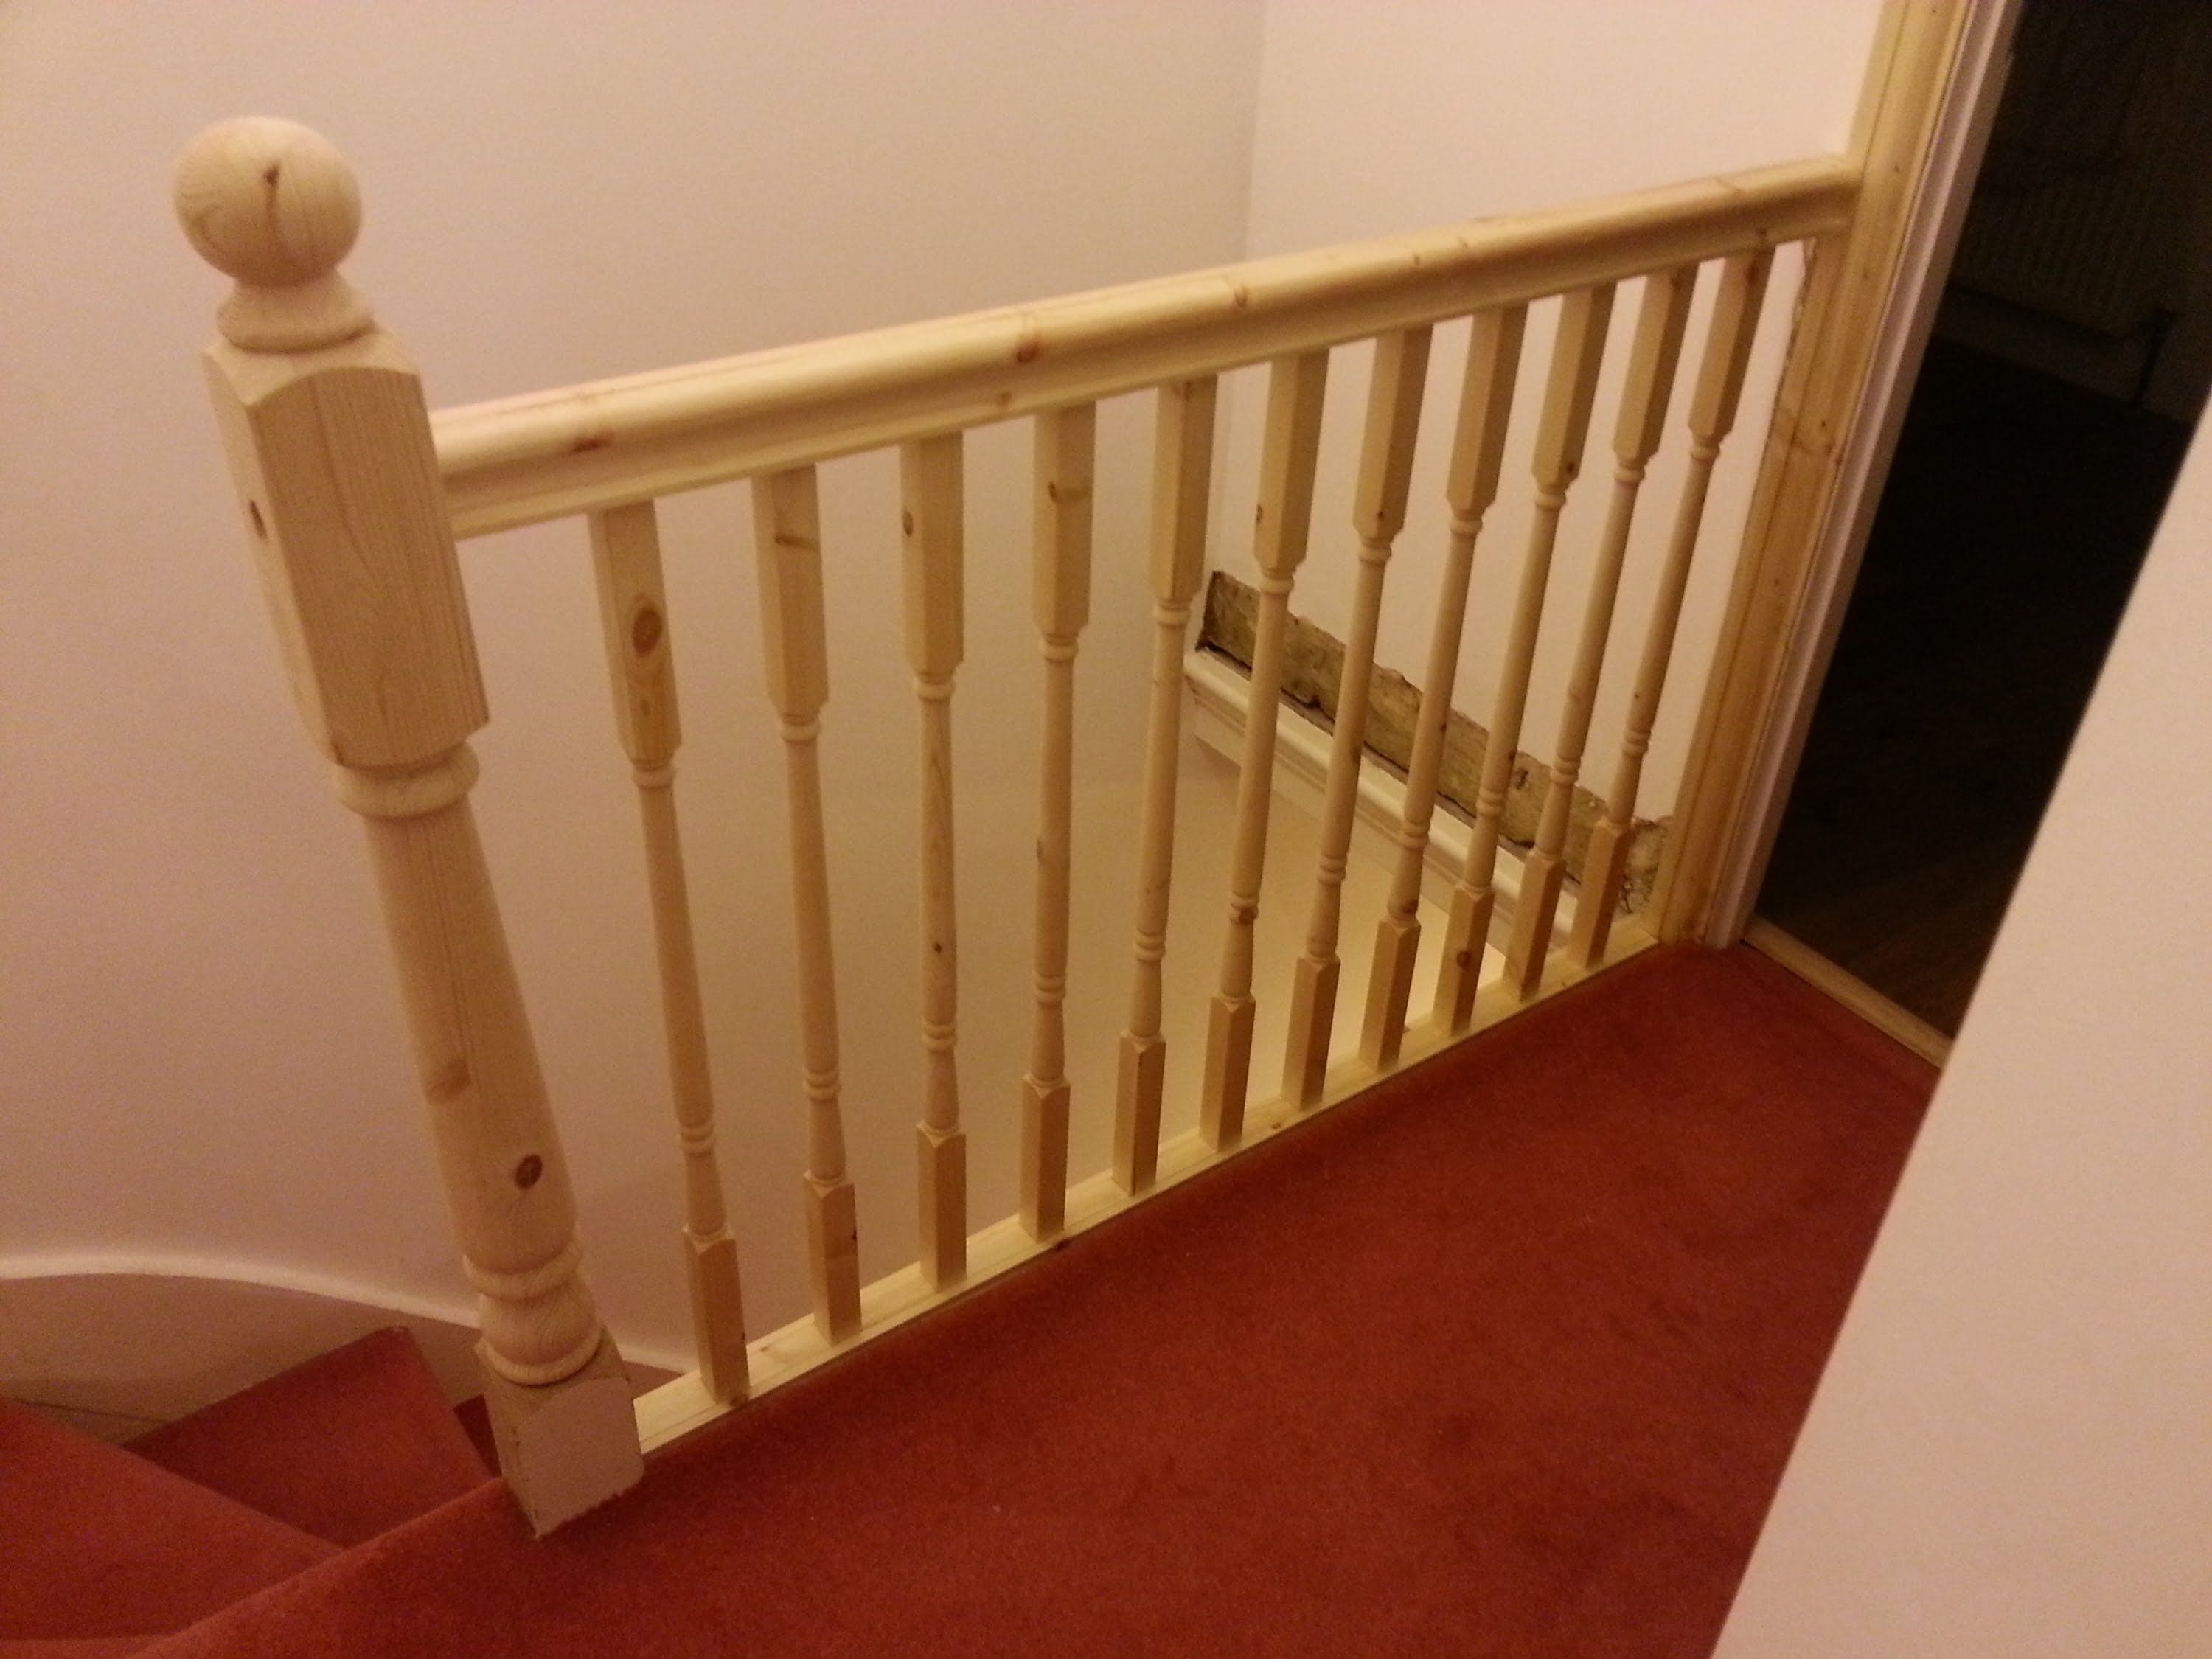 How To Replace Banister Newel Post Handrail And Spindles On A